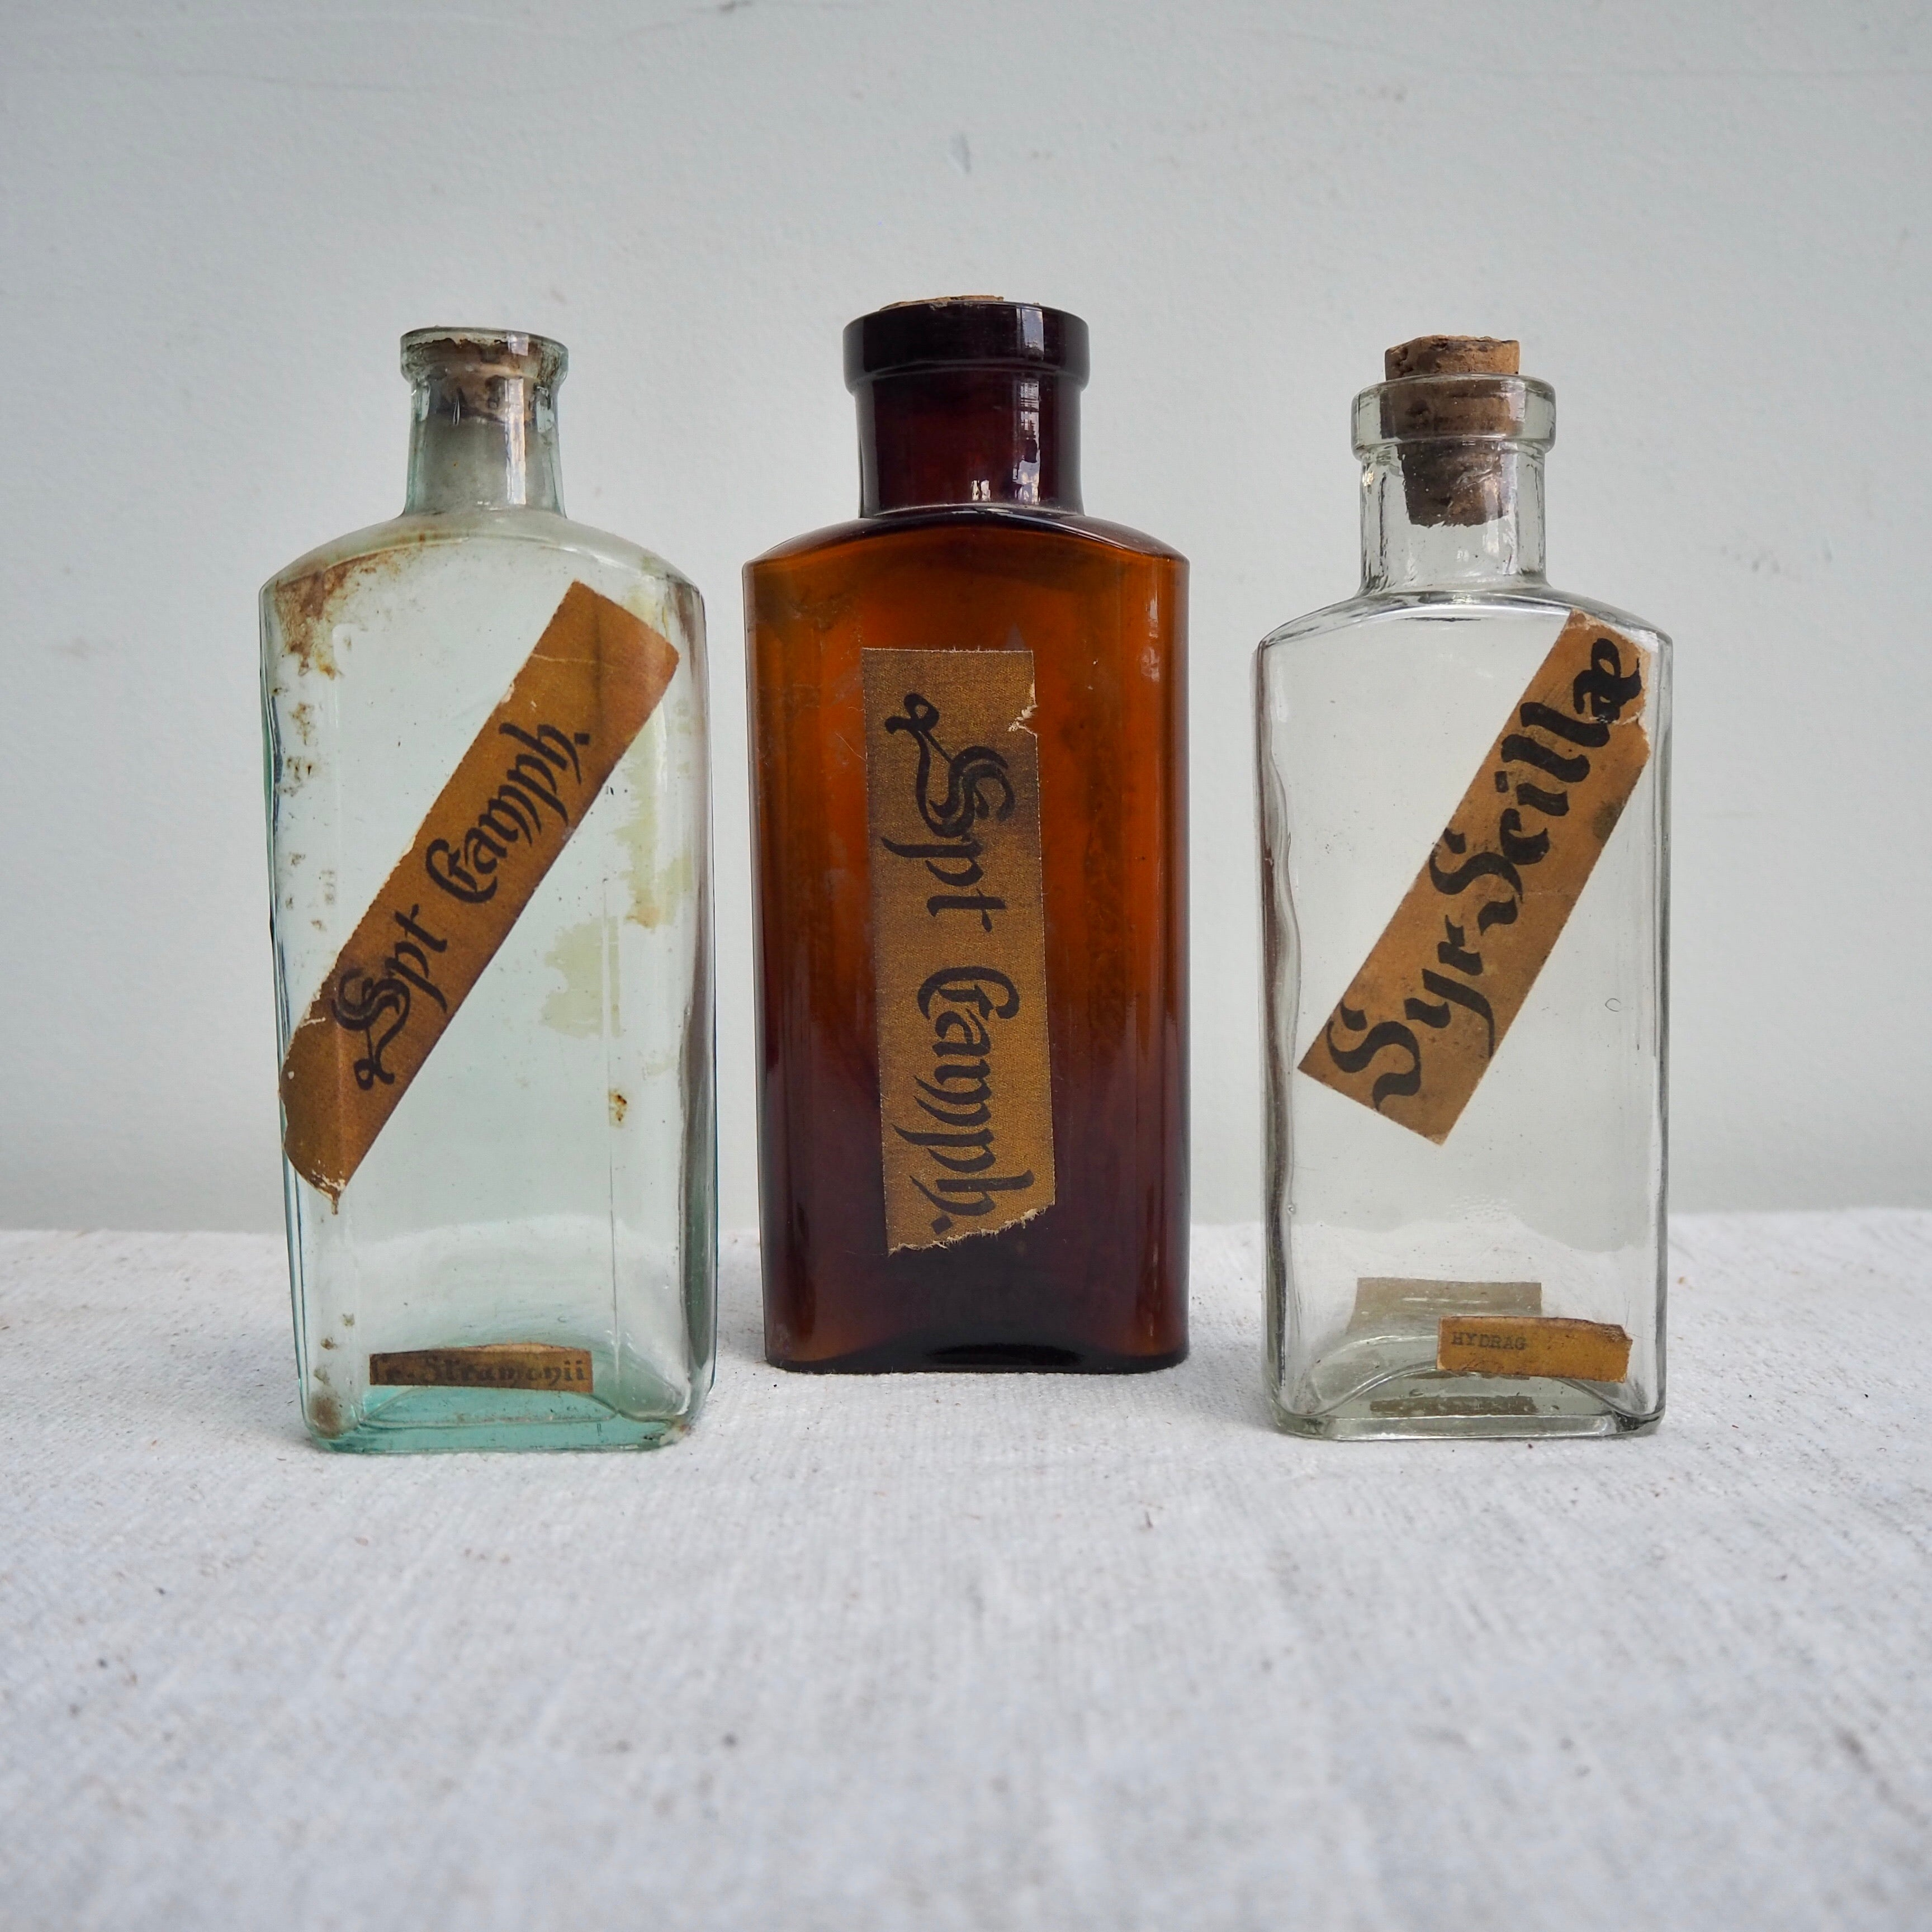 German Apothecary Bottle with Label no. 1